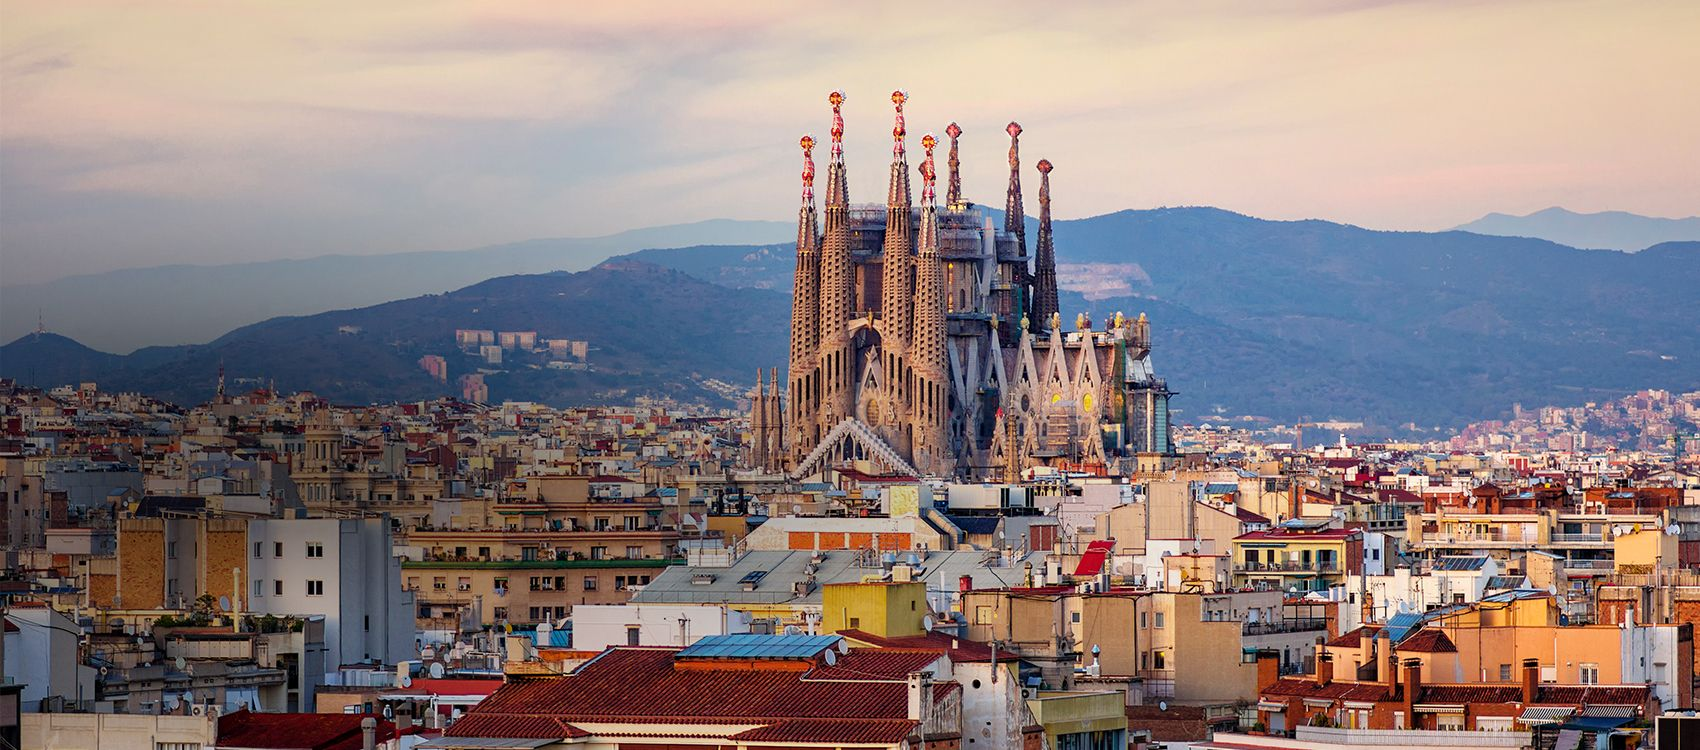 Explore Barcelona: How To Make the Most Out of the Trip